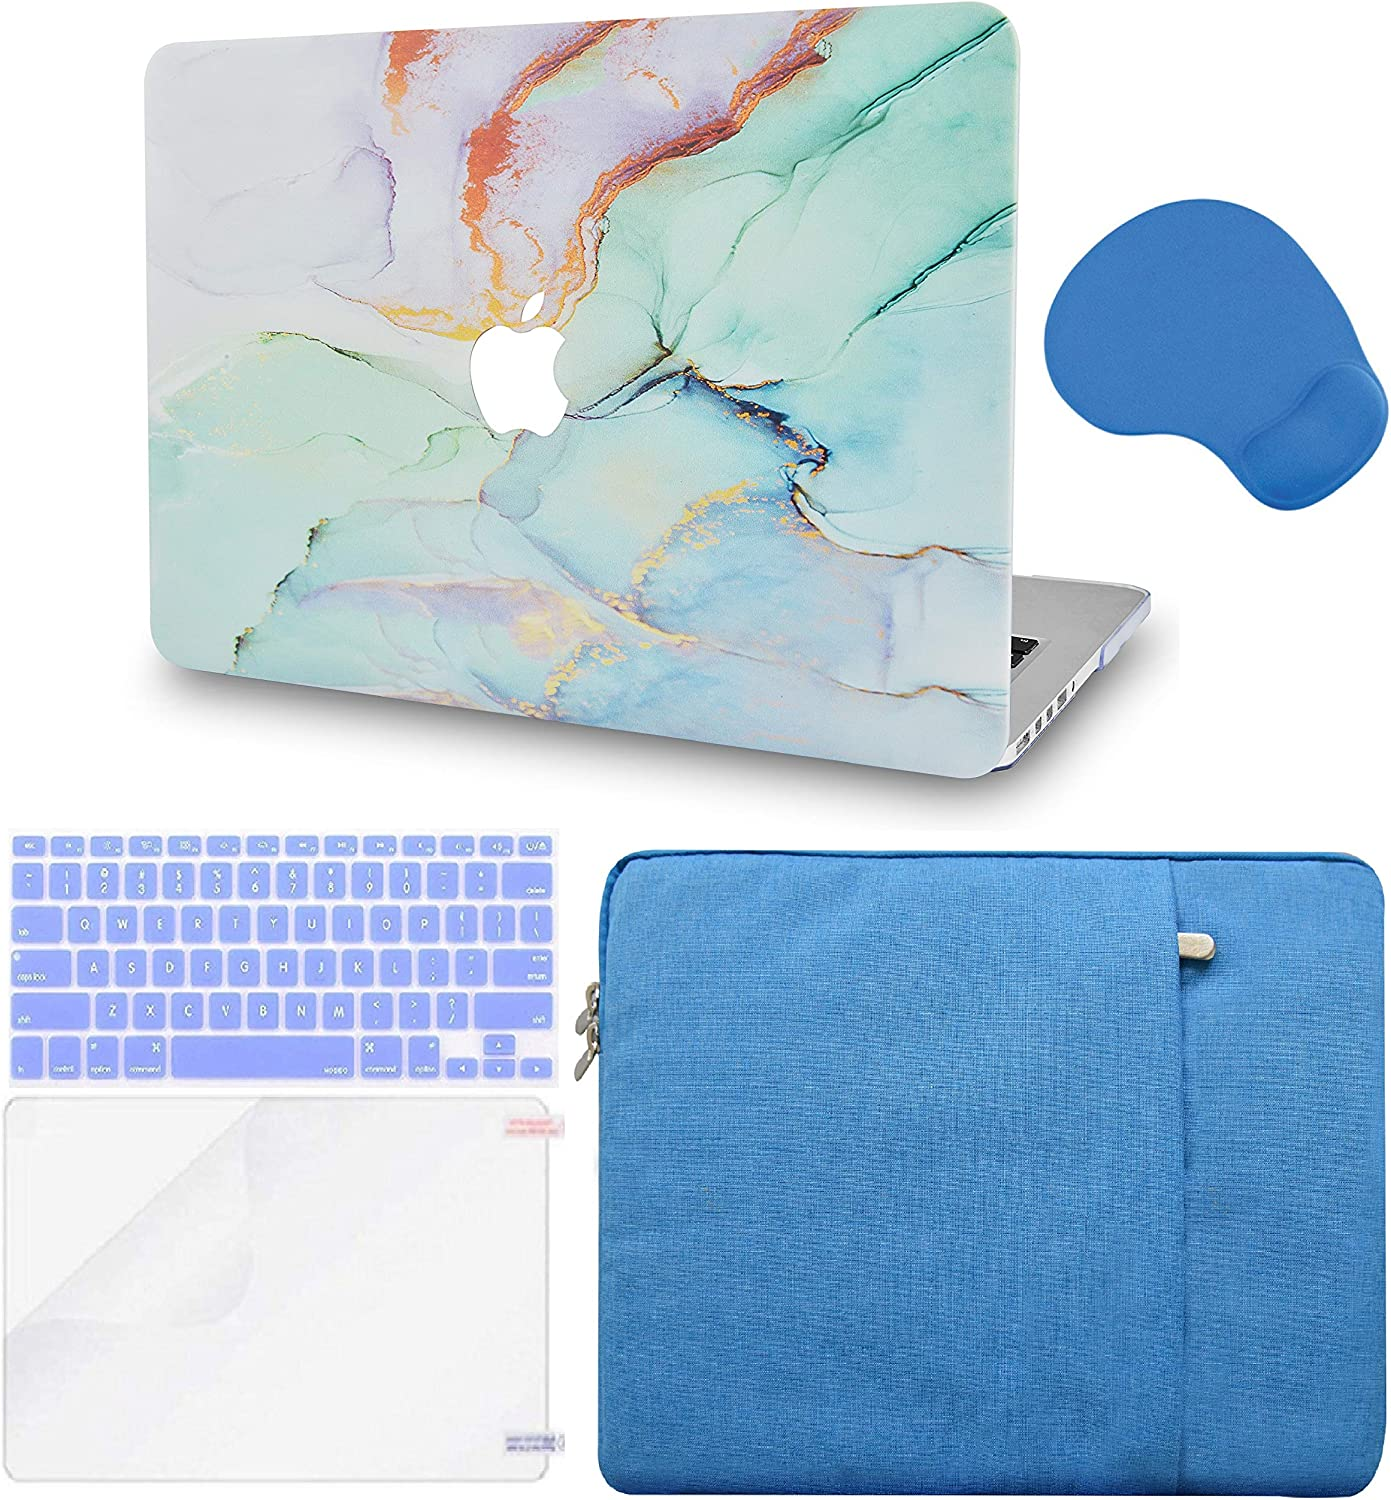 LuvCase 5 in 1 Laptop Case Compatible with MacBookPro 15 Touch Bar (2019/2018/2017/2016) A1990/A1707HardShellCover, Sleeve, Mouse Pad, Keyboard Cover, Screen Protector(Purple Blue Marble)